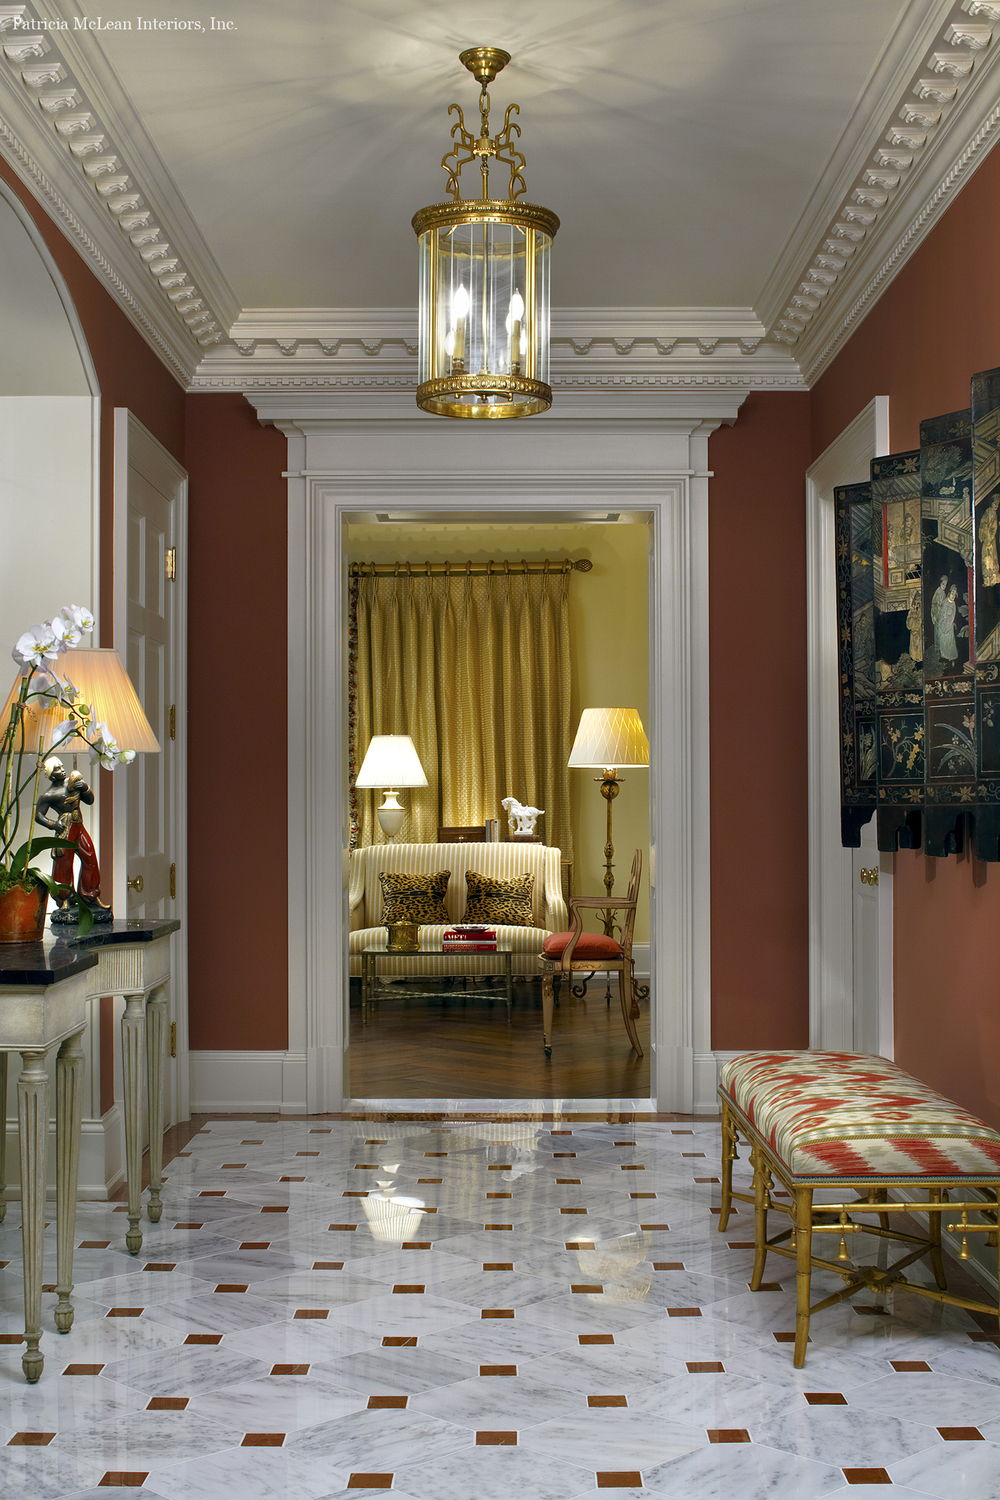 St Regis_Entry Foyer_EDIT.jpg